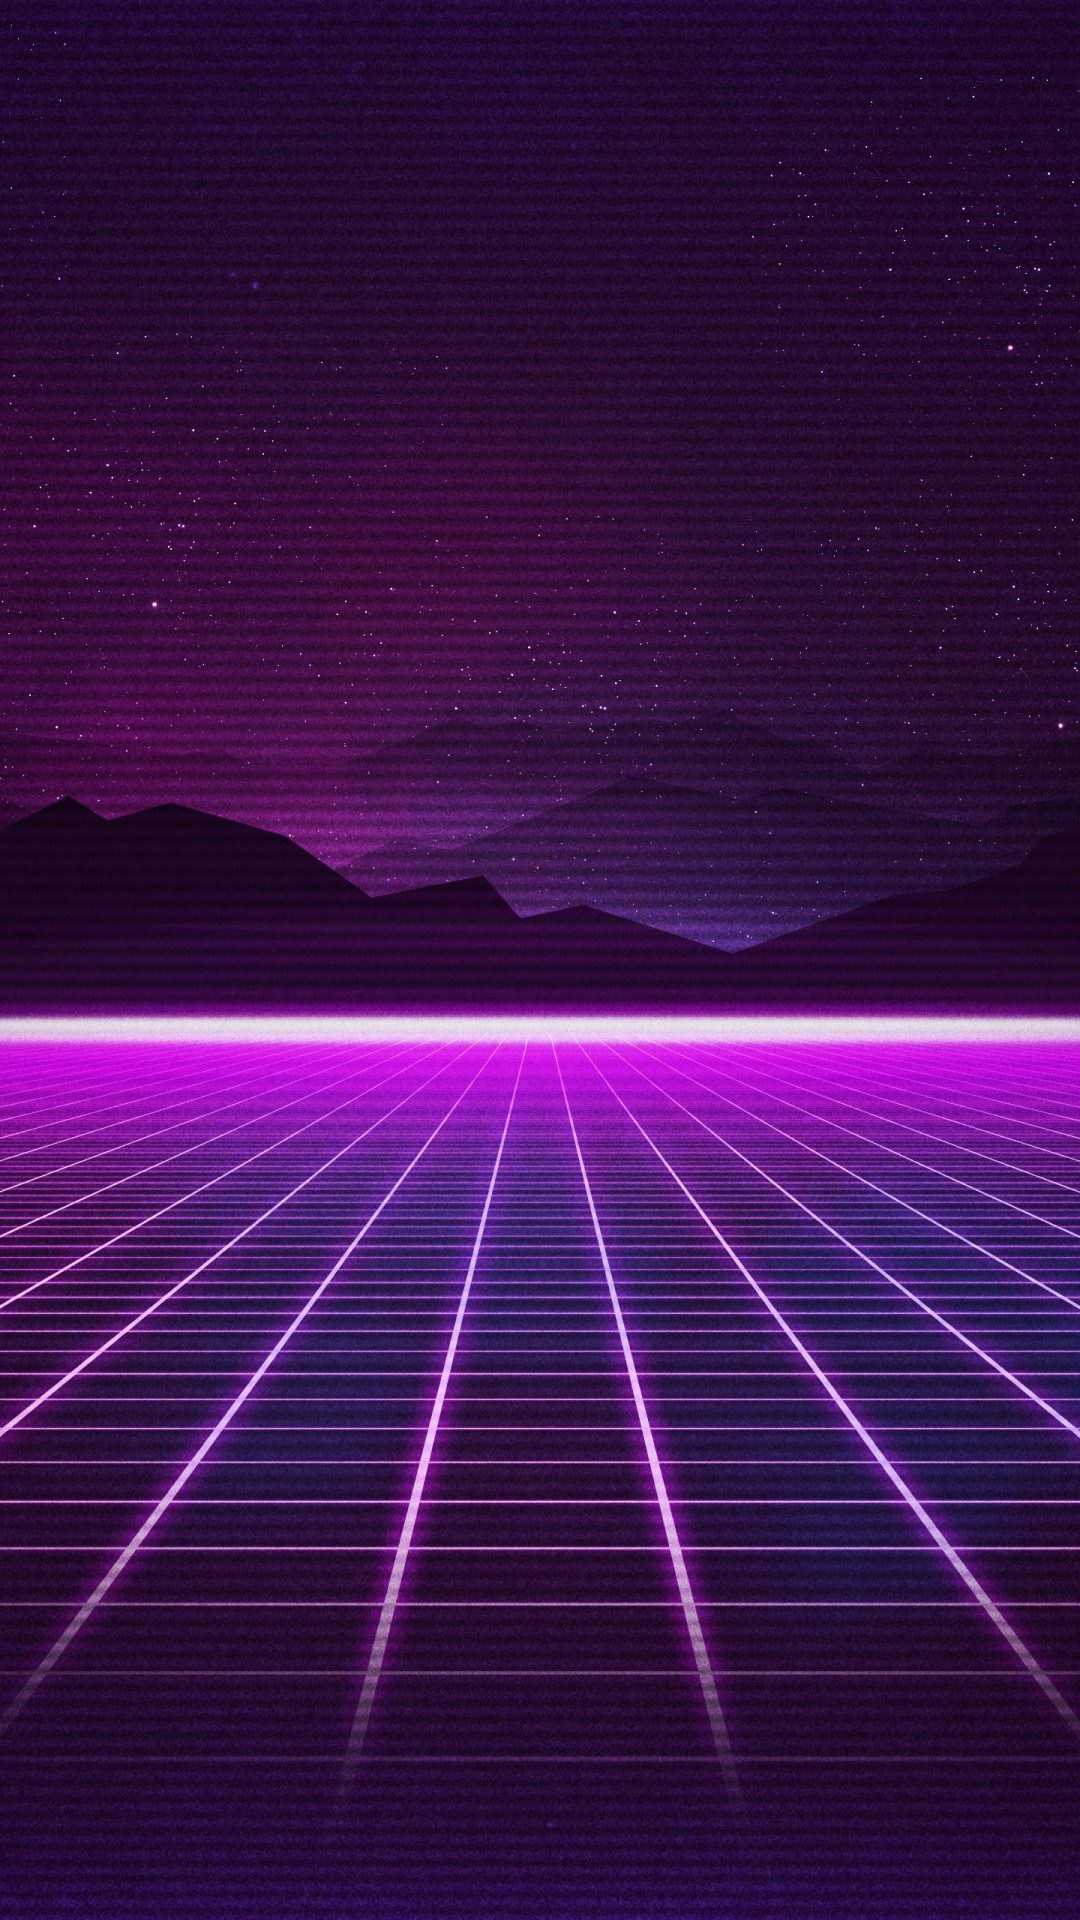 Wallpaper Retrowave, Purple, Lines, 4K, Art #18921